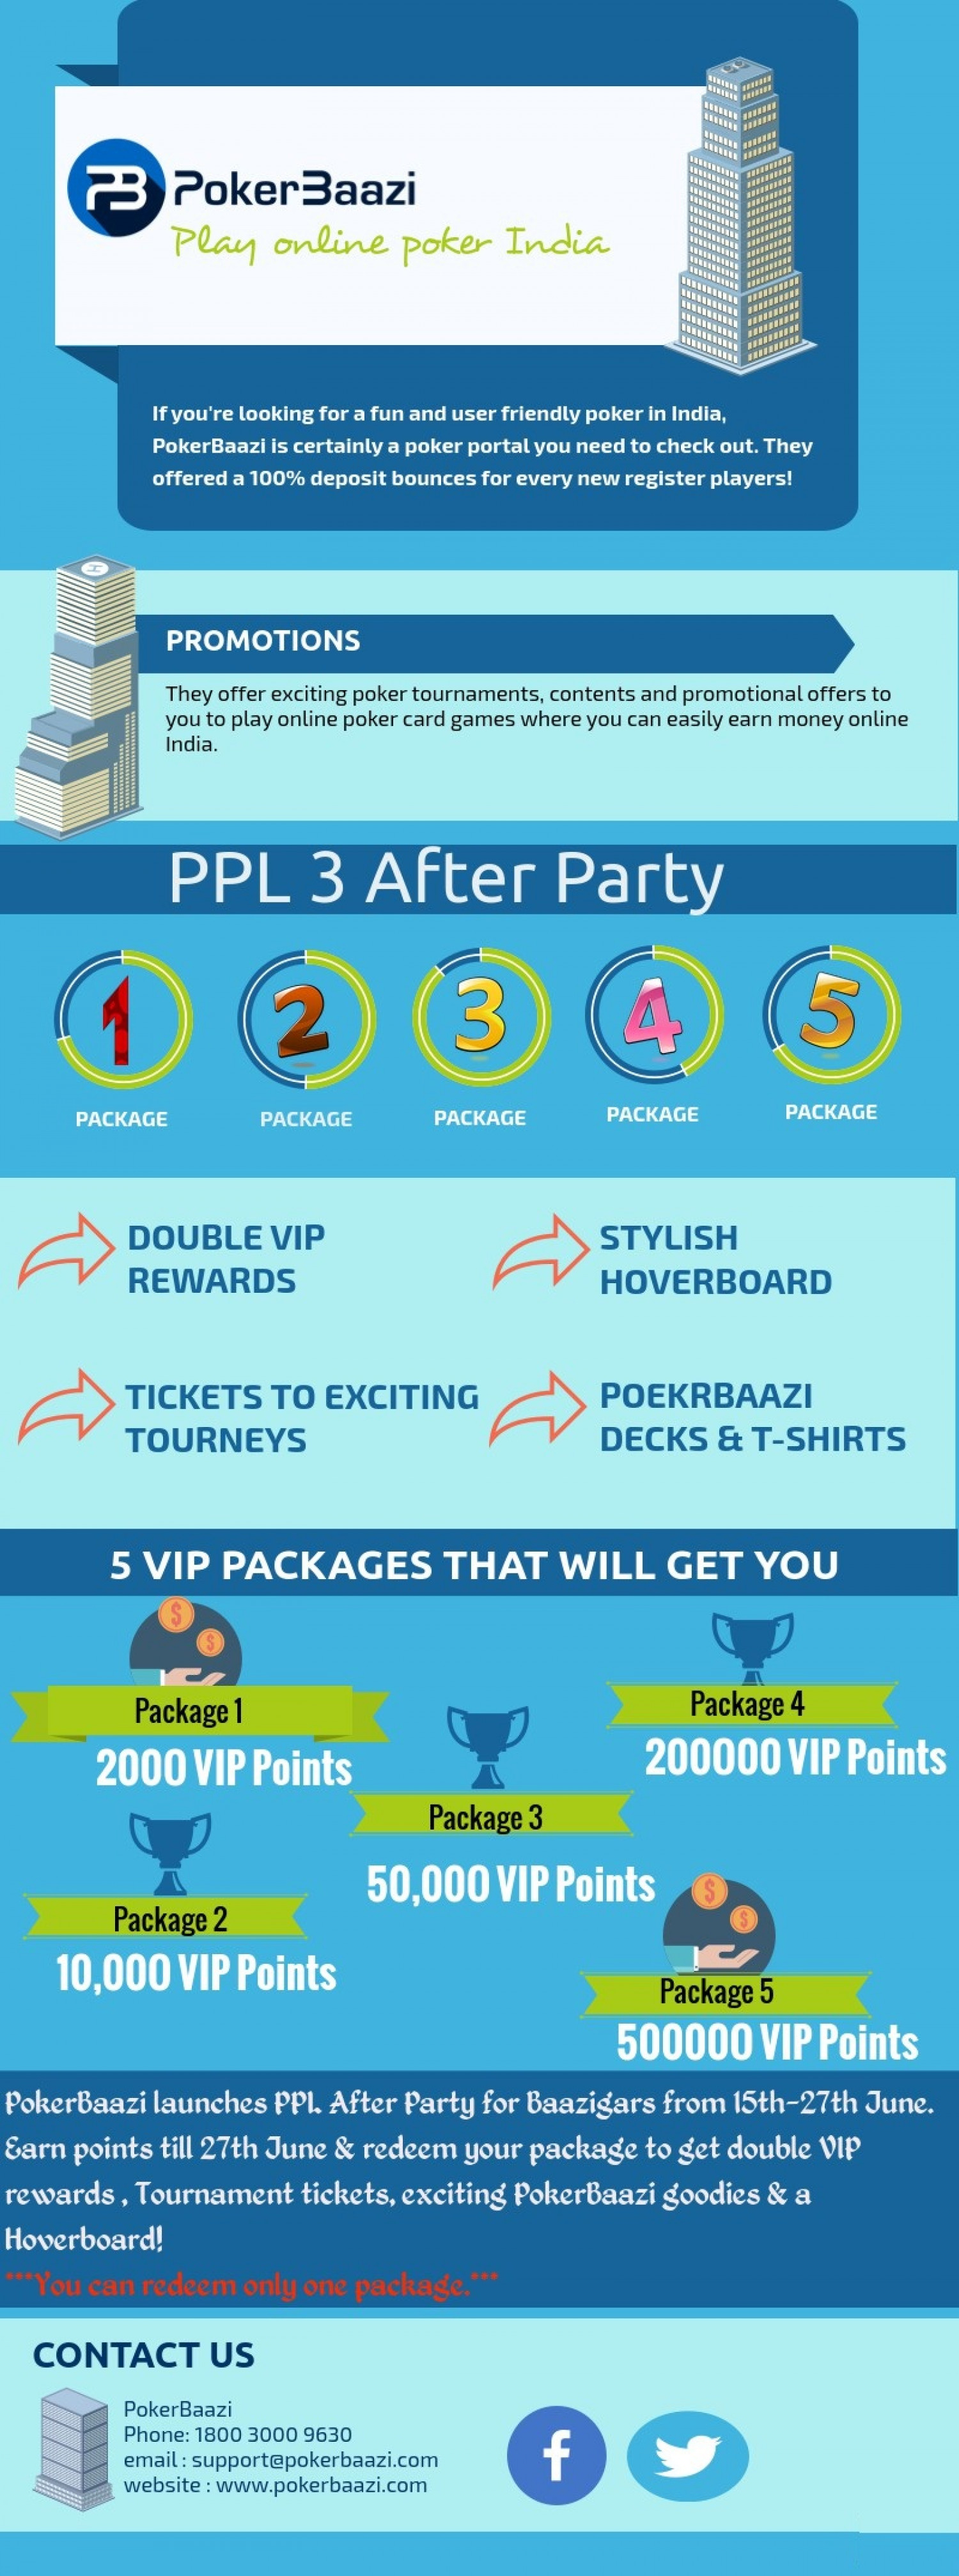 PPL 3 After Party-Poker Tournament